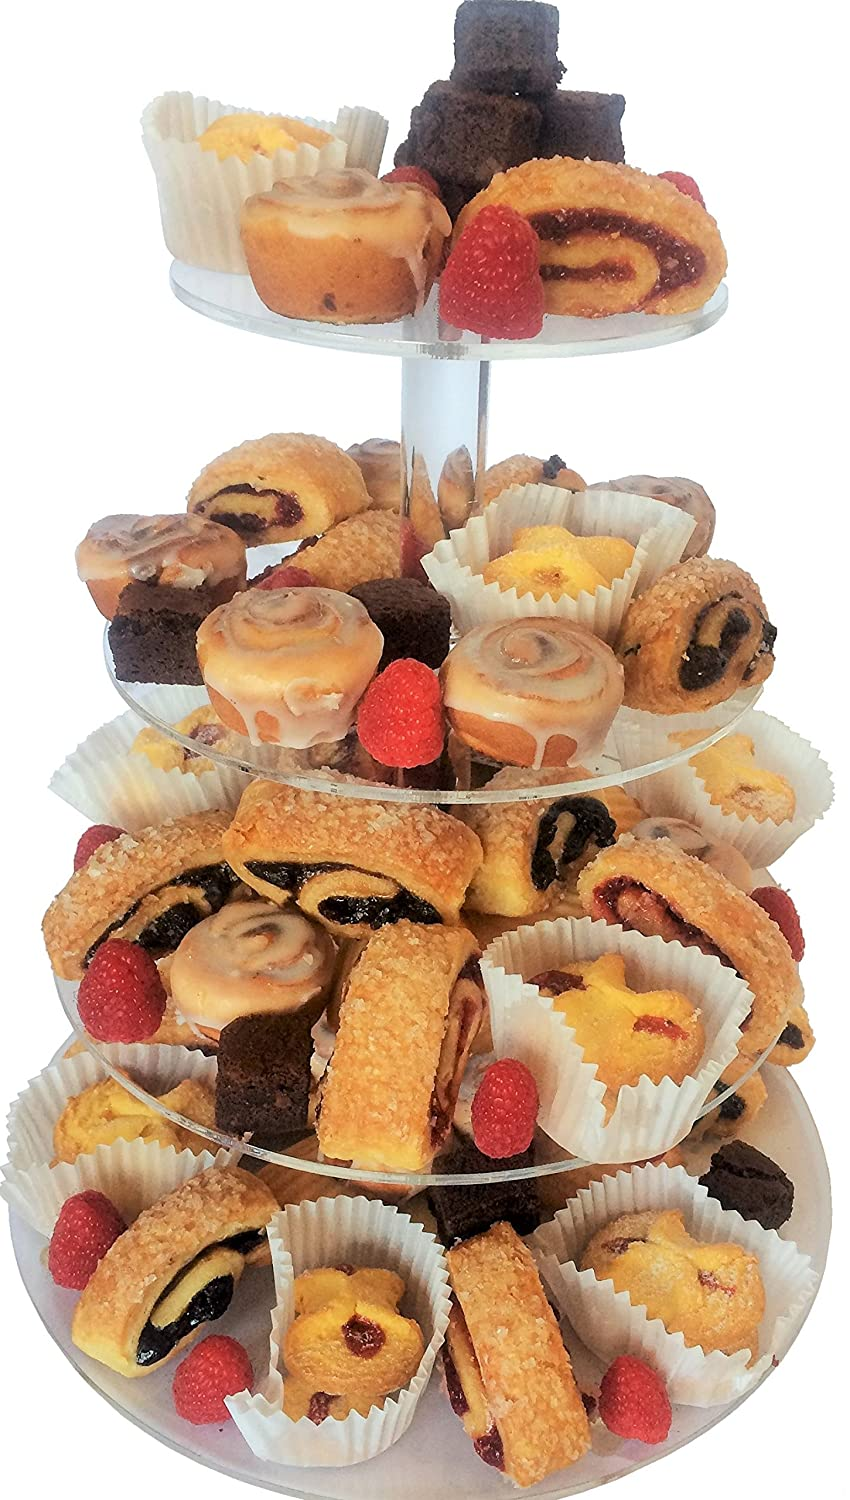 Cupcake Stand - 4 Tier - Beautiful Dessert Tower and Clear Acrylic Party Cake Tower! by Jiva Organic   B00NP4YZZ4